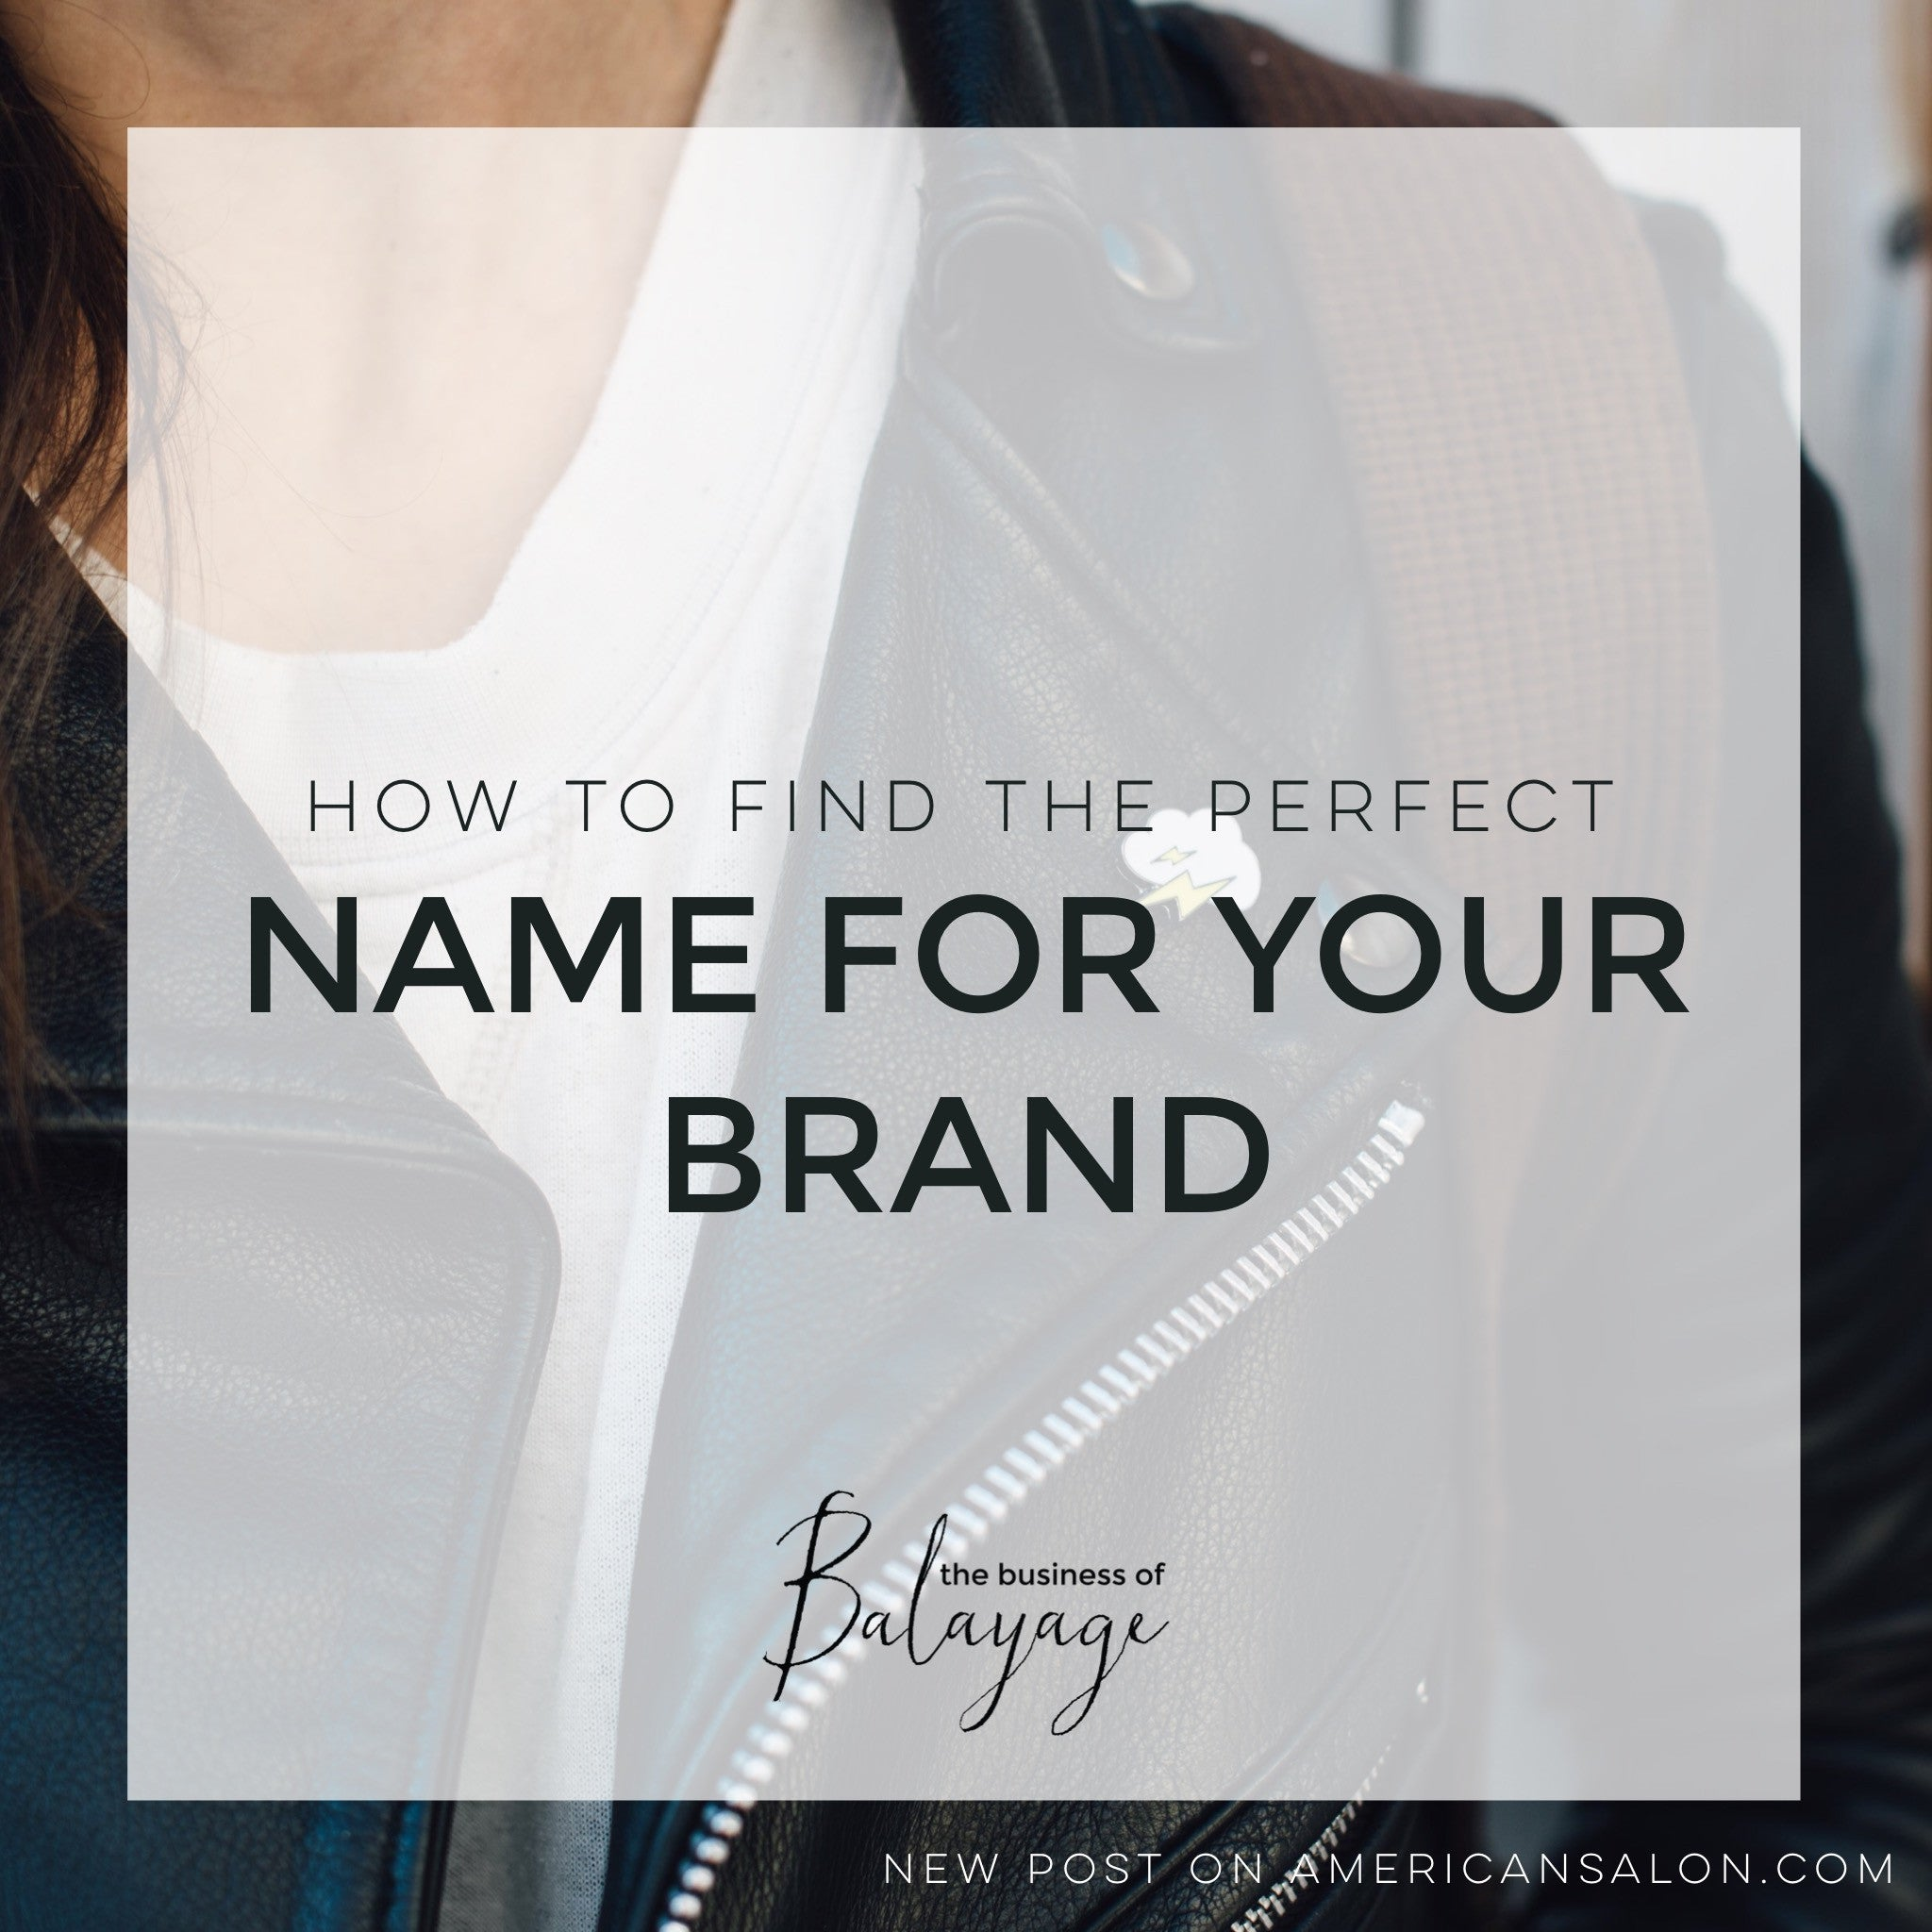 How to Find the Perfect Name for Your Brand